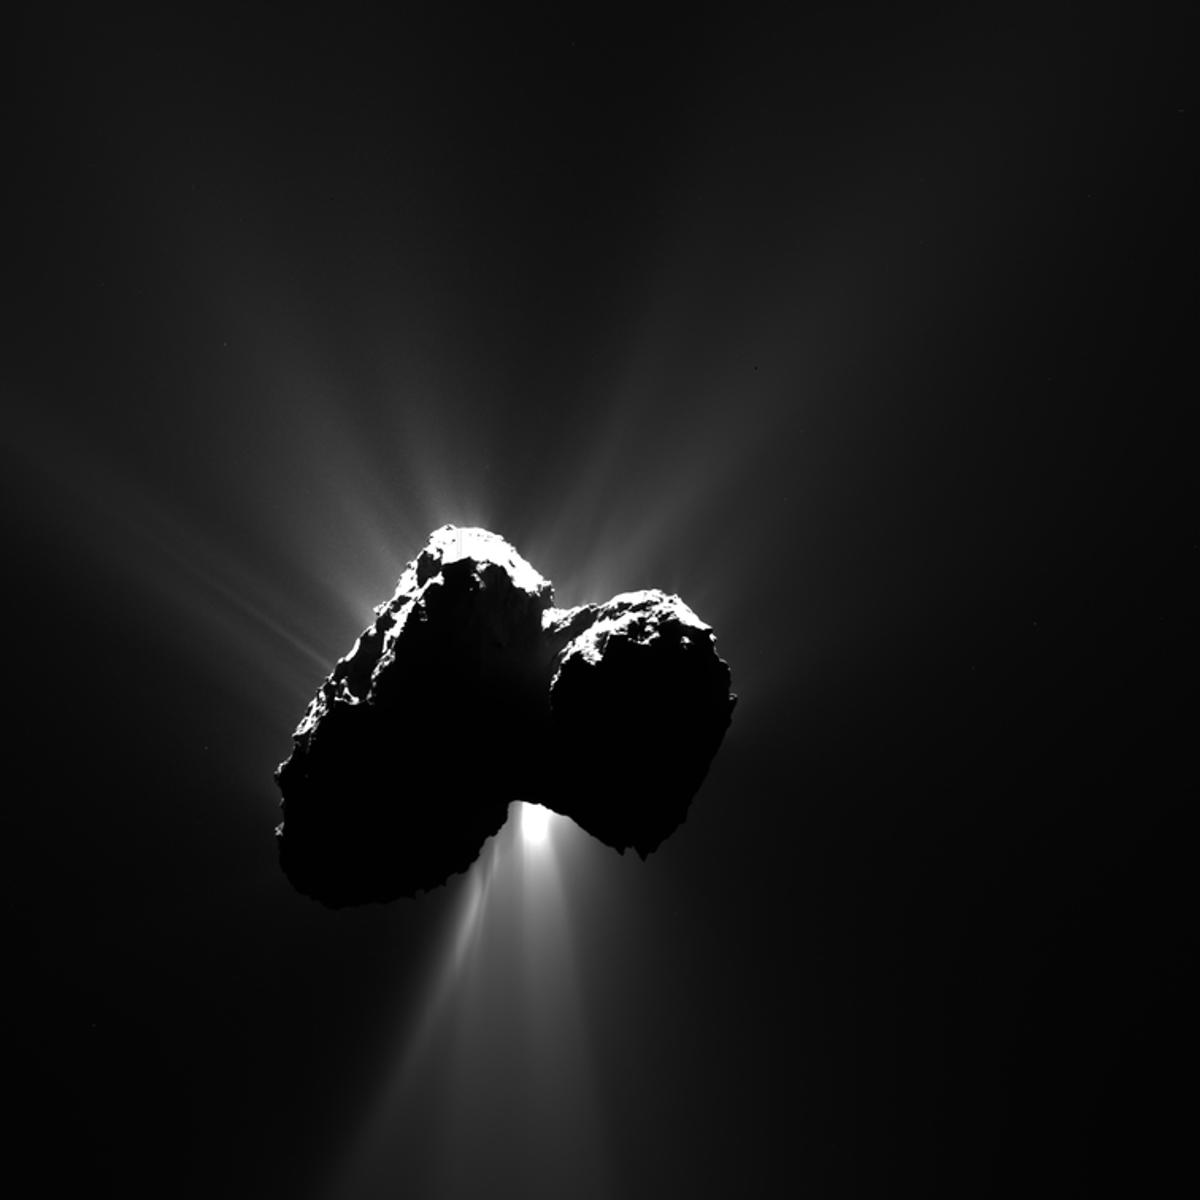 Image of Comet67P/Churyumov-Gerasimenko, the resting place of the Rosetta spacecraft and Philae lander, as seen in 2015 from a distance of 317 km (197 miles)